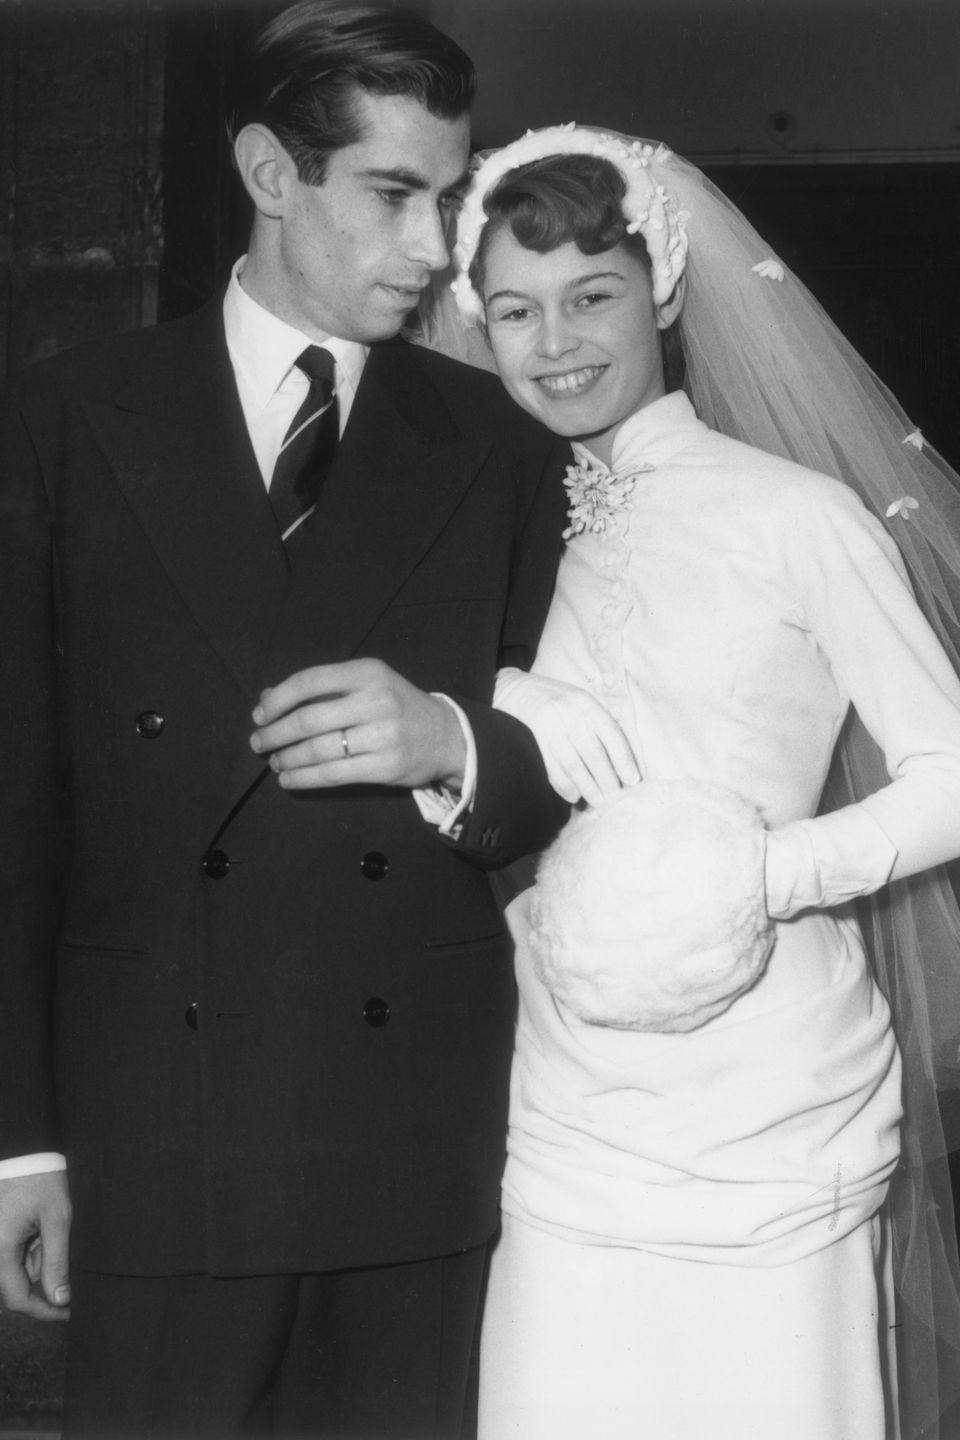 <p>Brigitte Bardot had just made her big screen debut in <em>Le Trou Normand </em>(<em>Crazy for Love</em>) when she caught the eye of film director Roger Vadim. The couple married in December 1952 at the Church of Passy in France—just a few months after the actress turned 18. </p>